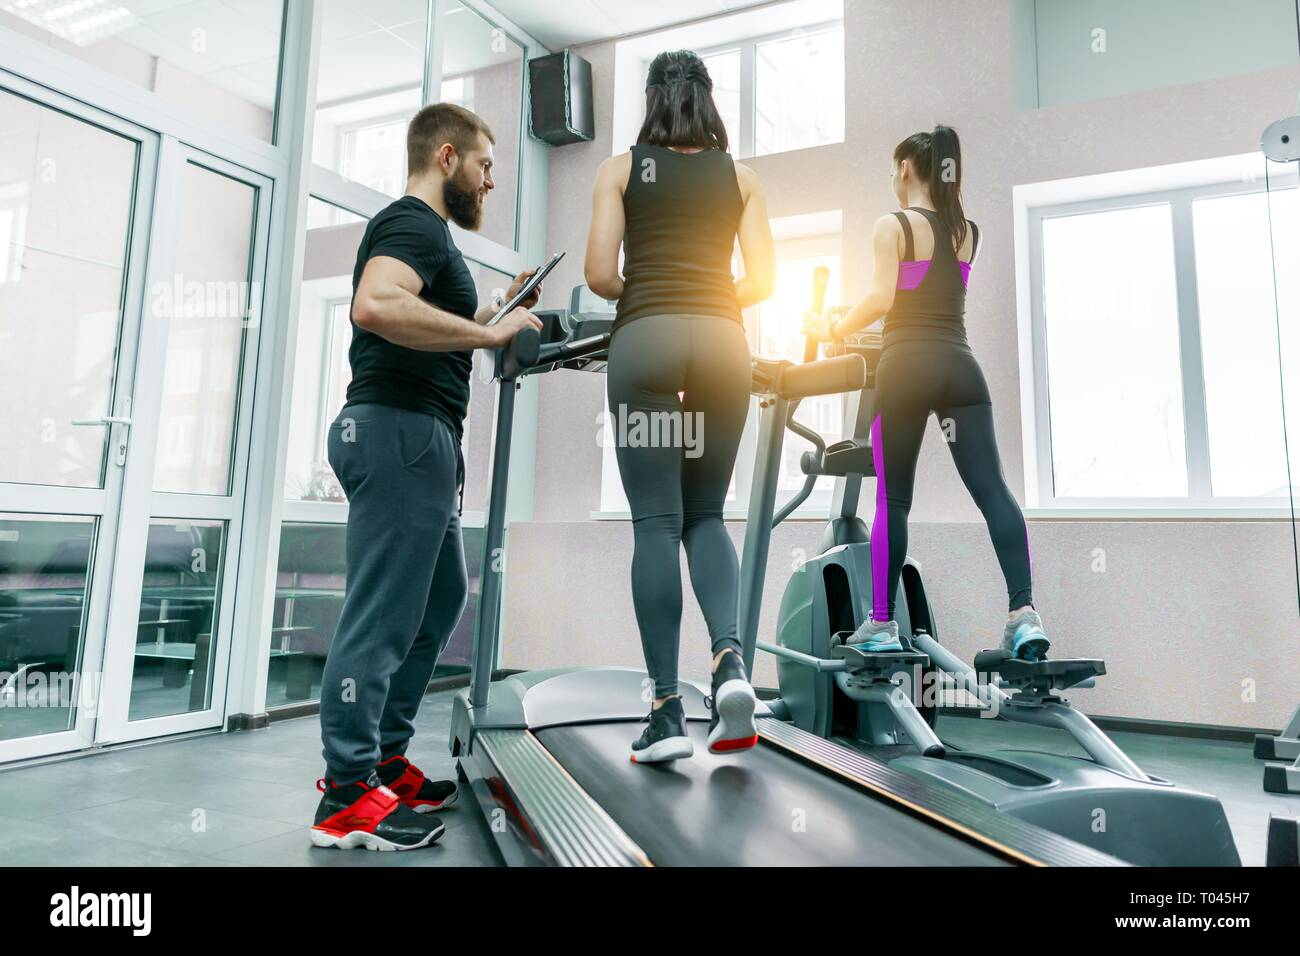 Young athletic women on treadmill, personal instructor coaching and helping client woman. Fitness, sport, training, people concept Stock Photo